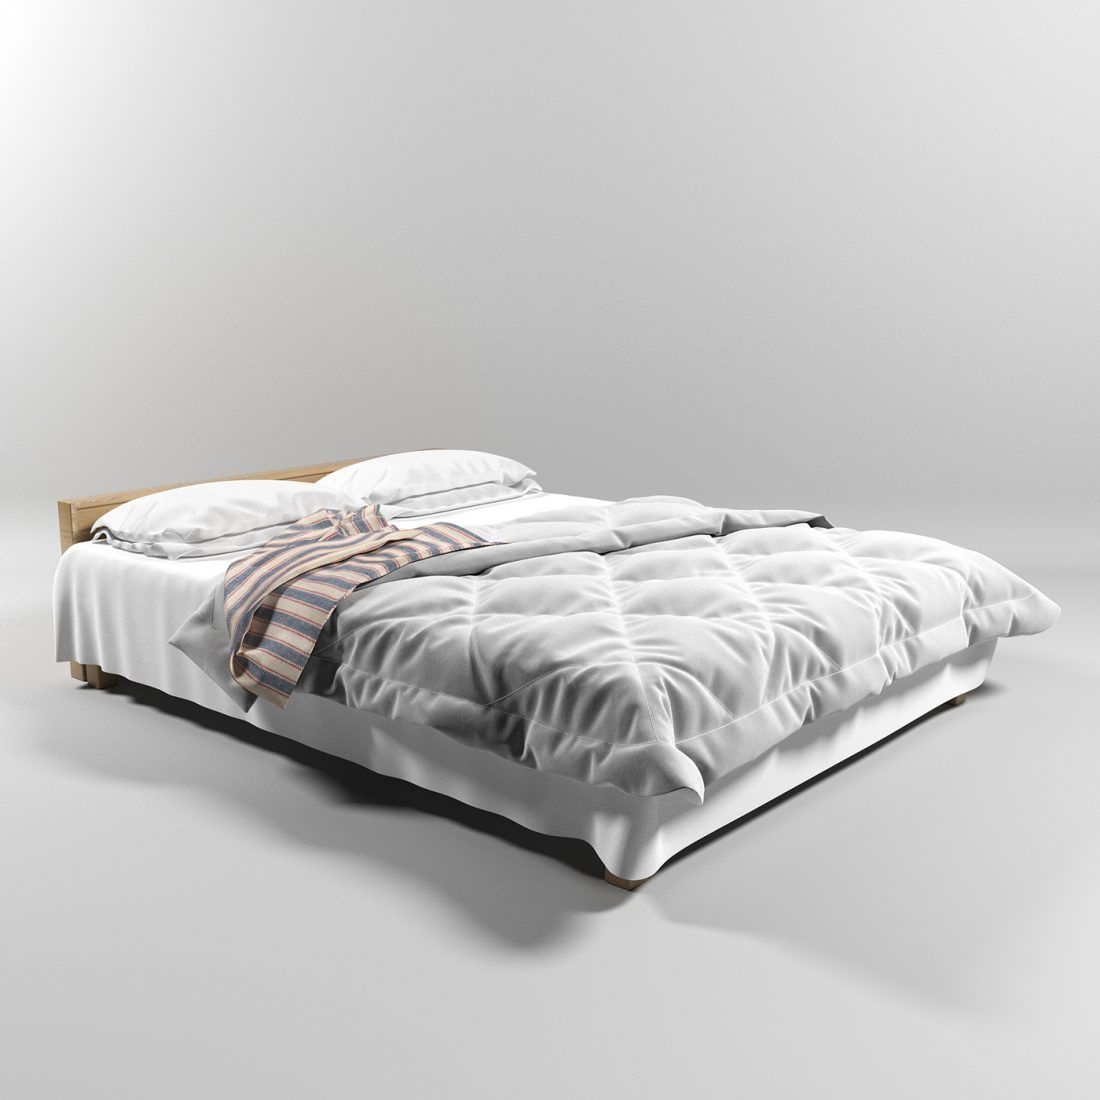 3d Bed Model 140 Free Download By Ramizvardar Bed Low Bed Model